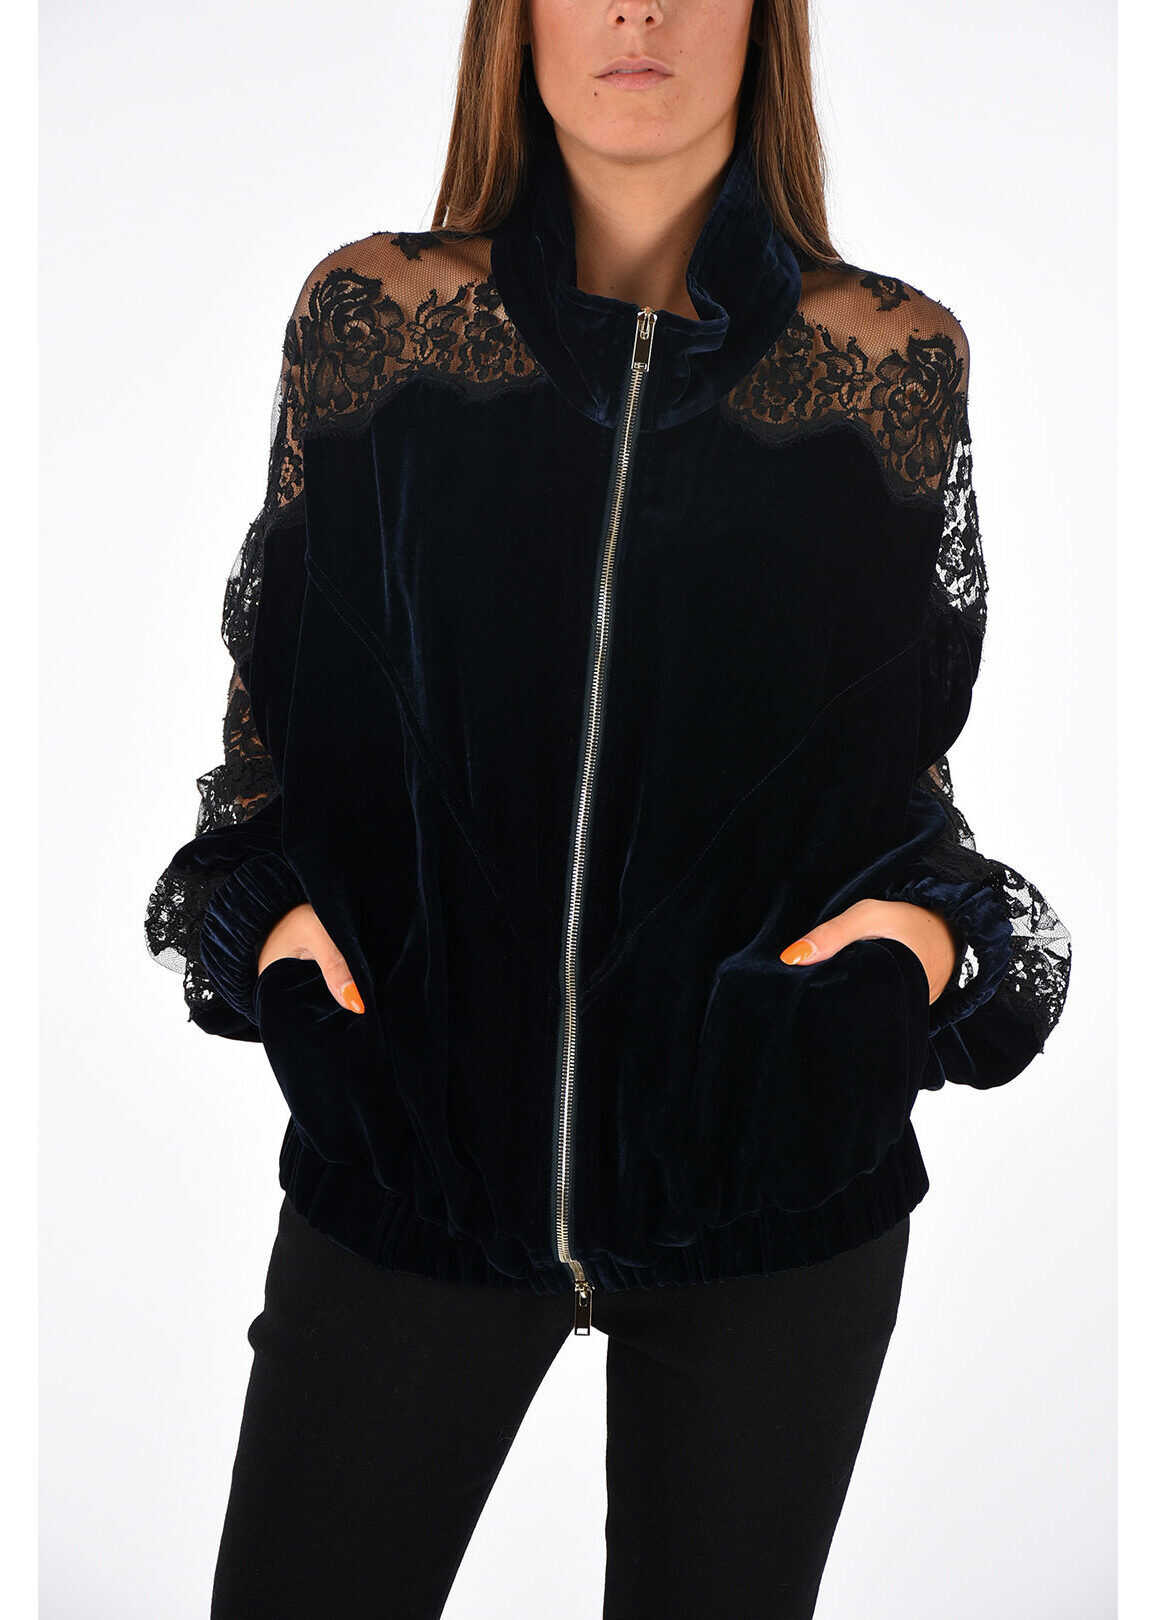 adidas by Stella McCartney Sweatshirt with Lace BLACK